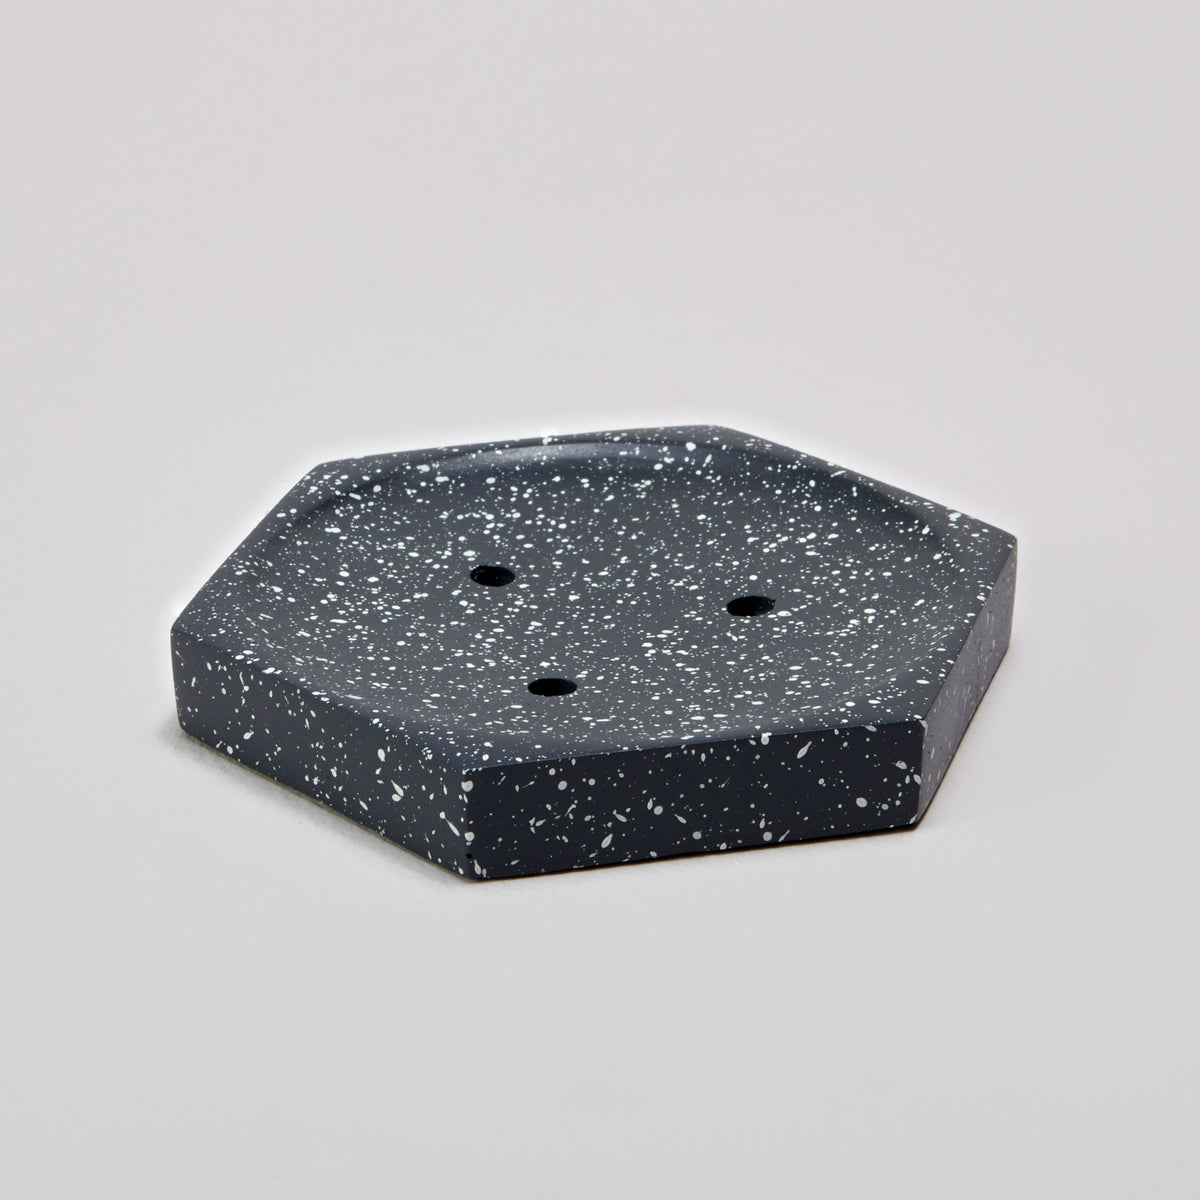 Speckled Cement Soap Dish, Slate